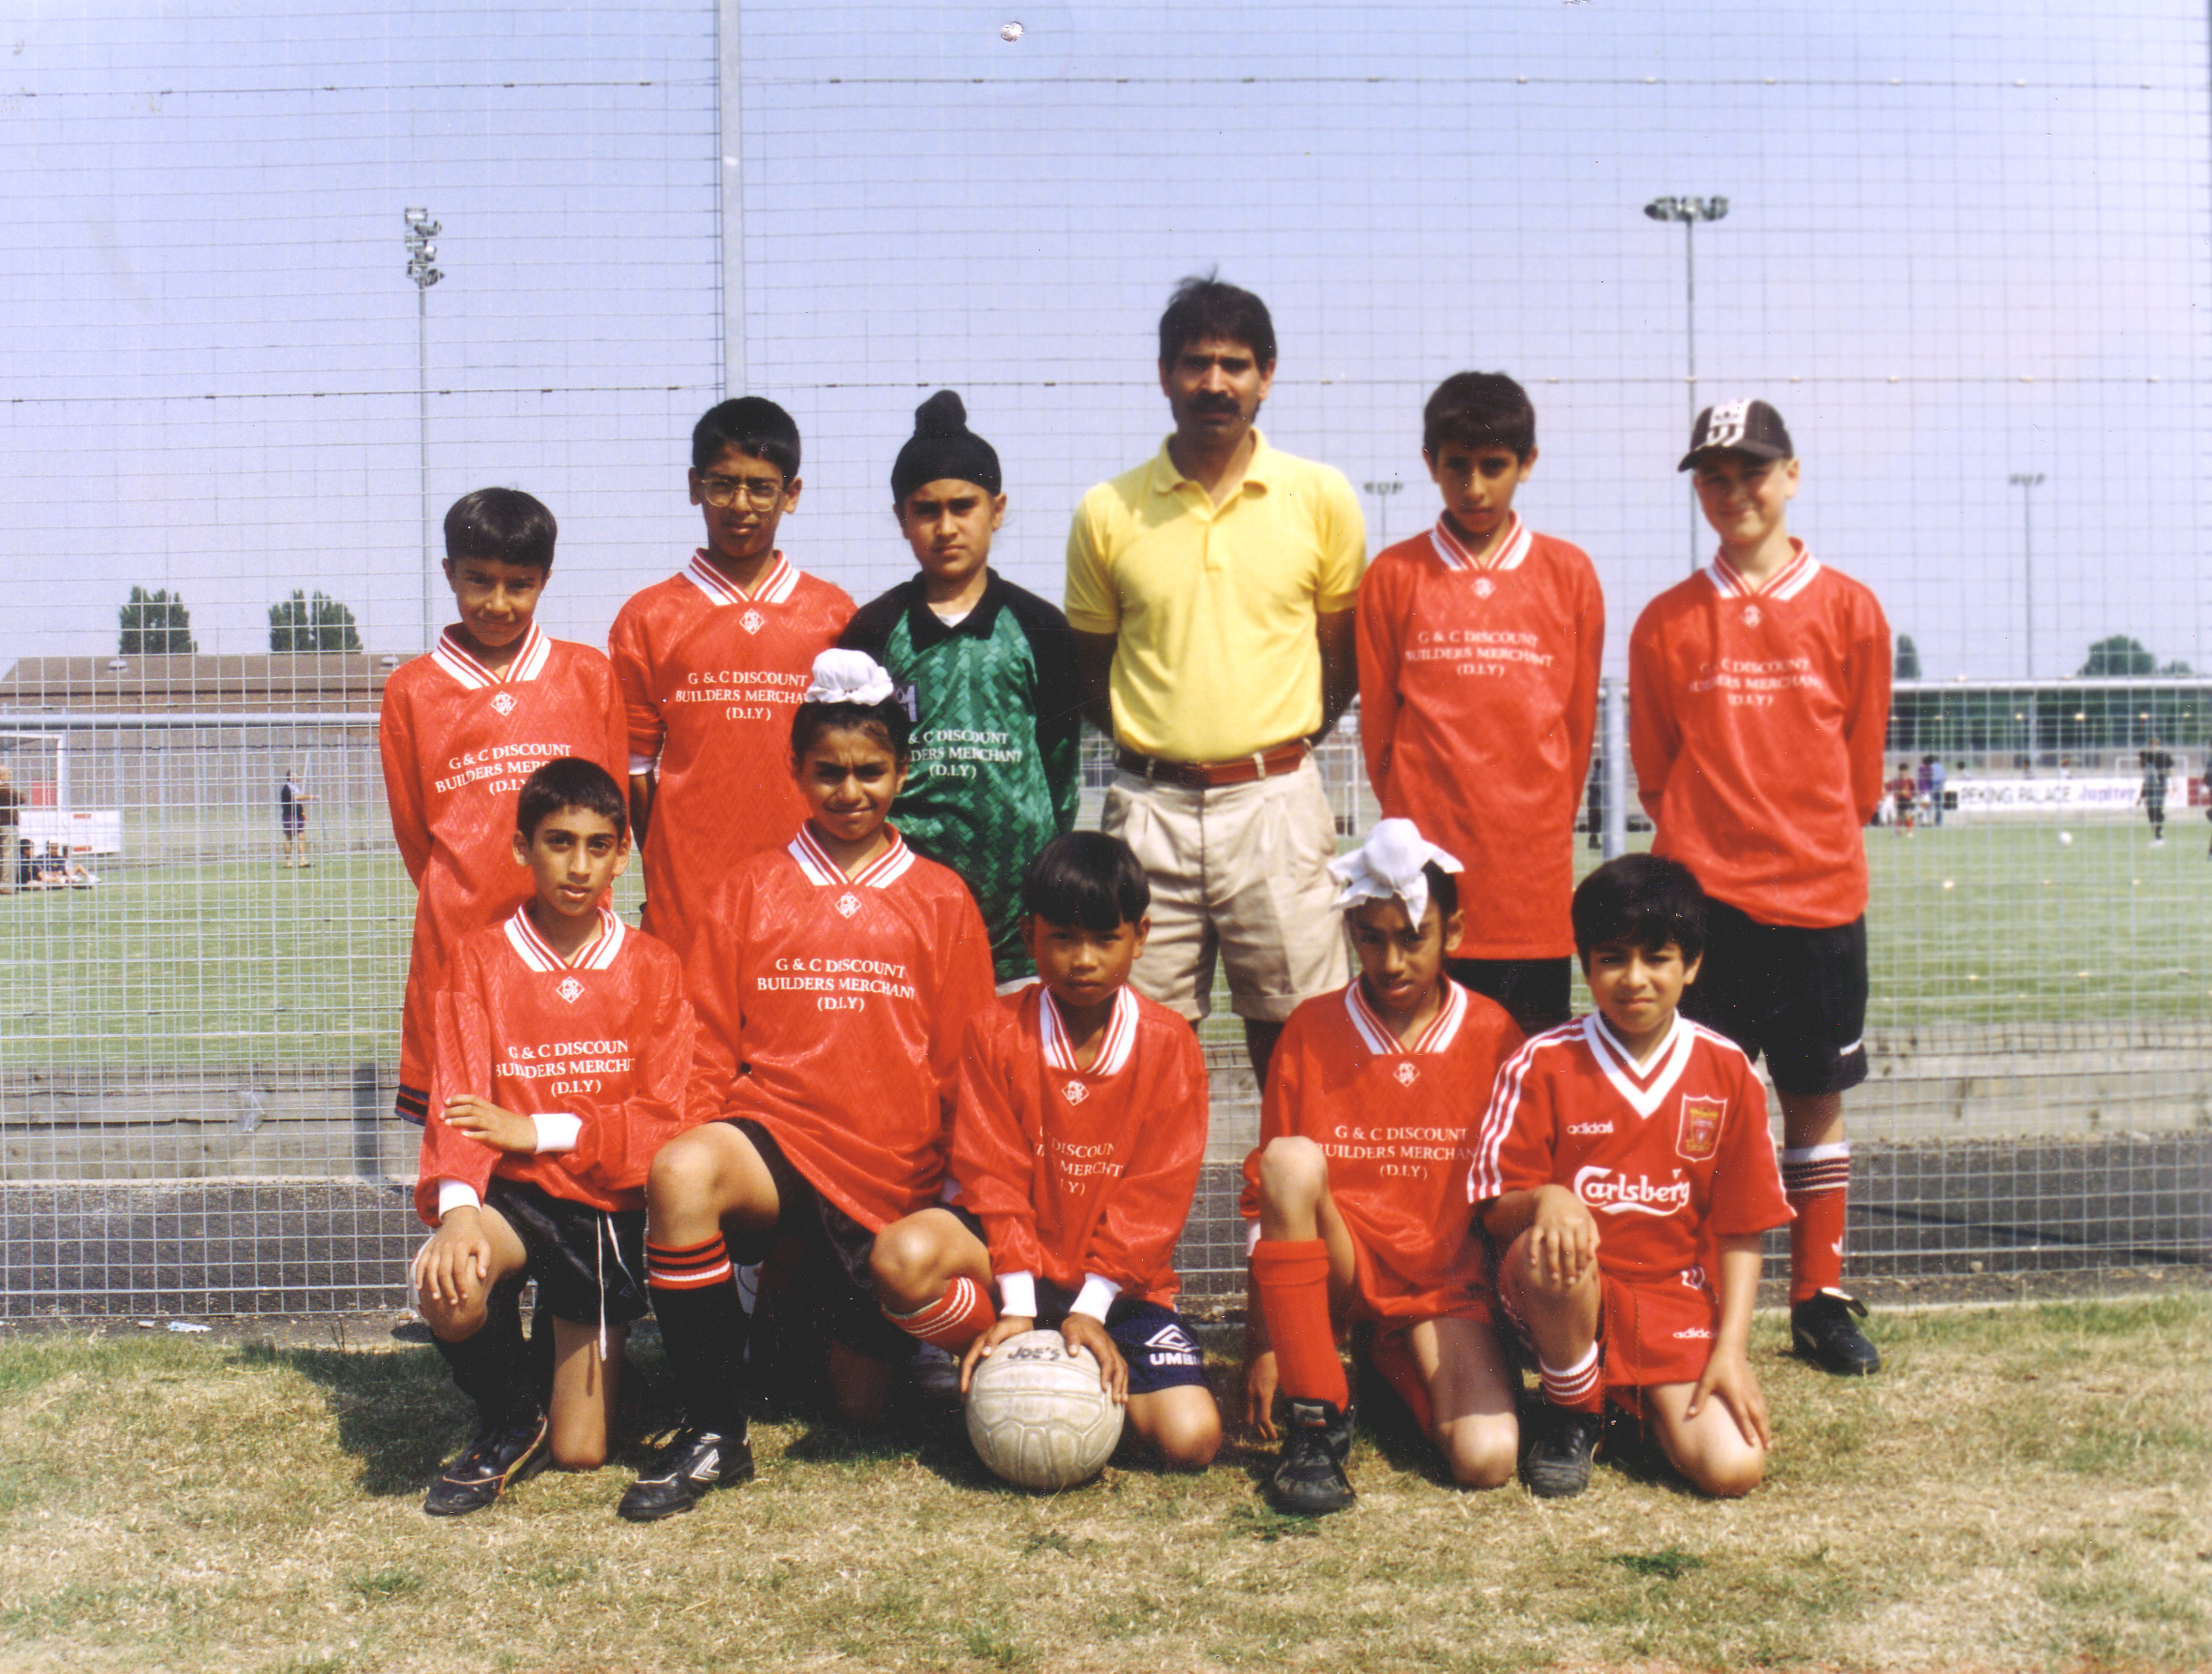 Guru Nanak Youth - Manager Guy Dale- Year unknown